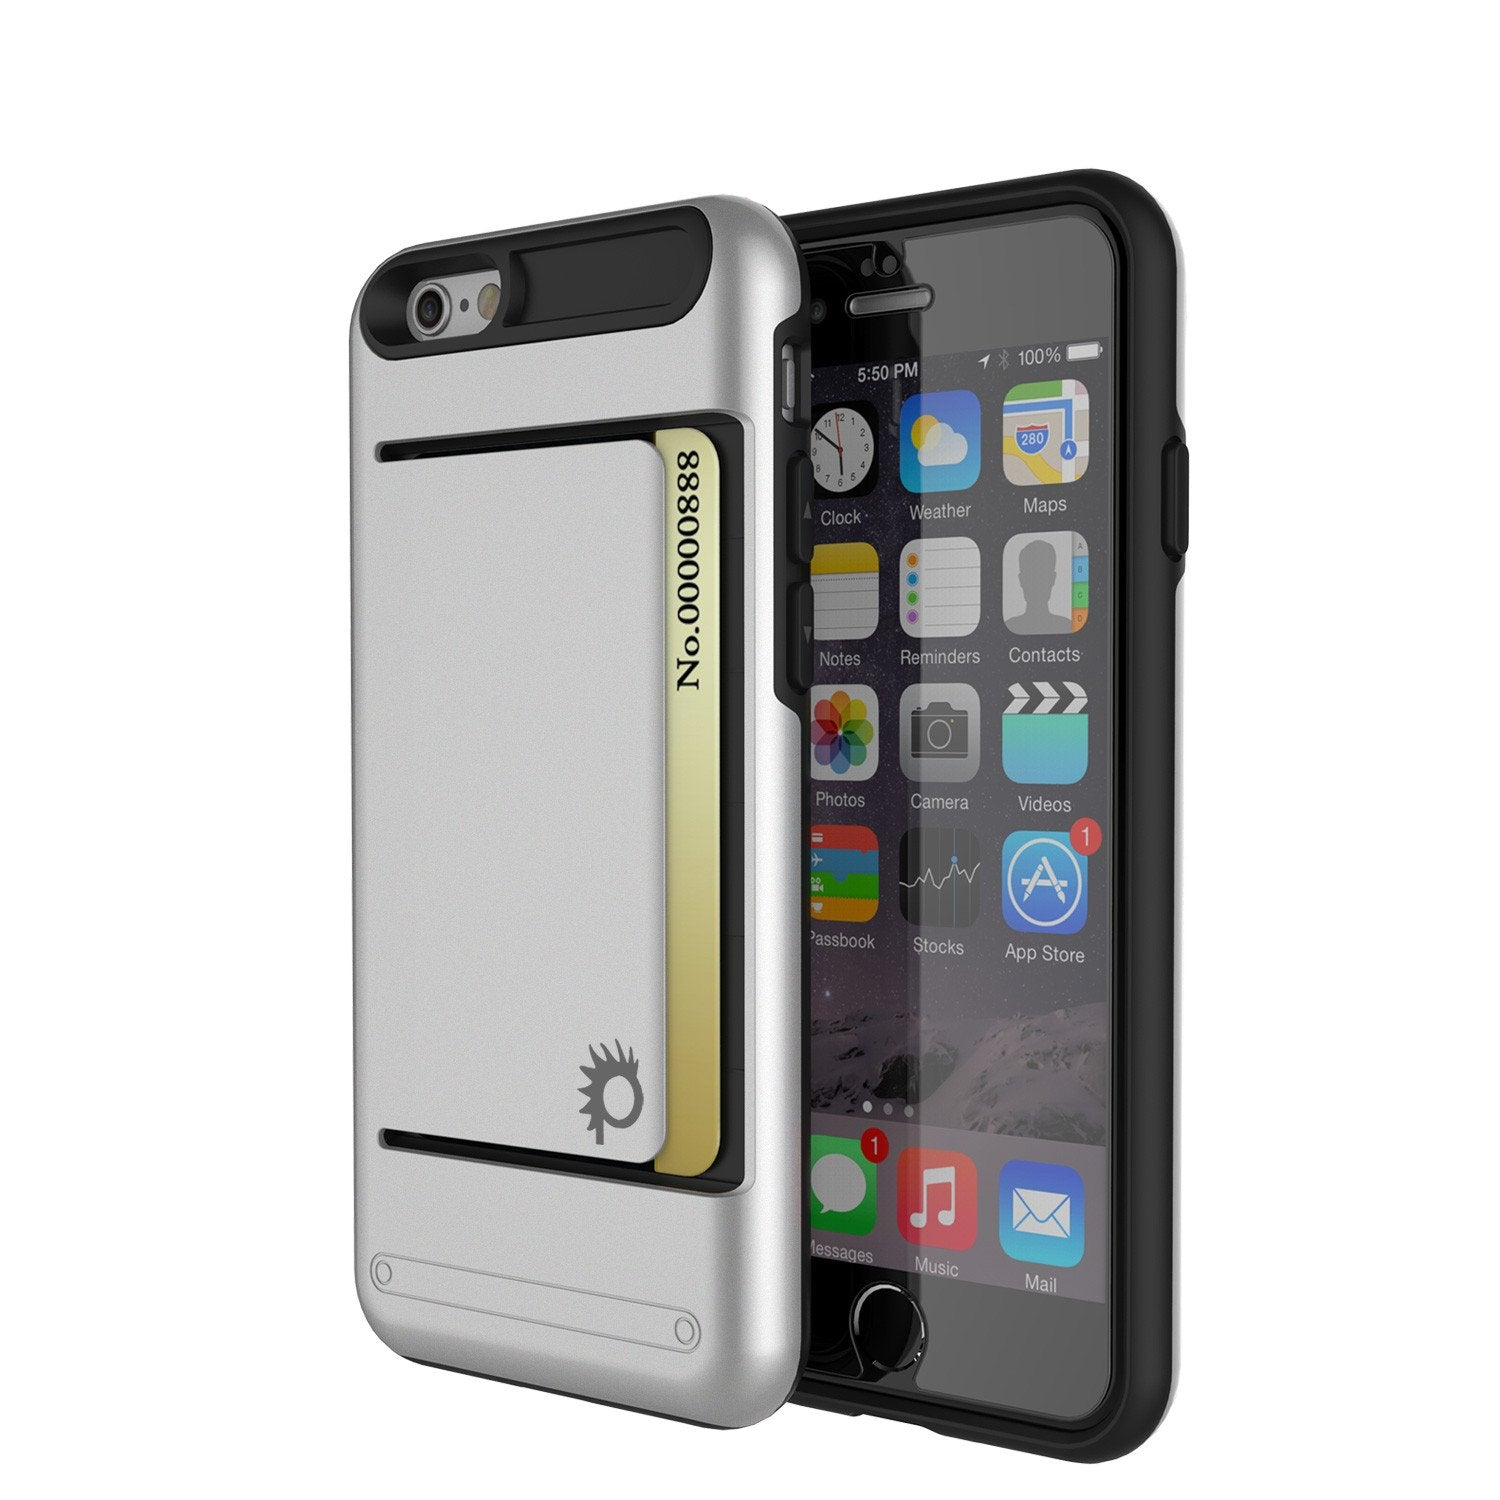 iPhone 6/6s Case PunkCase CLUTCH Silver Series Slim Armor Soft Cover Case w/ Tempered Glass